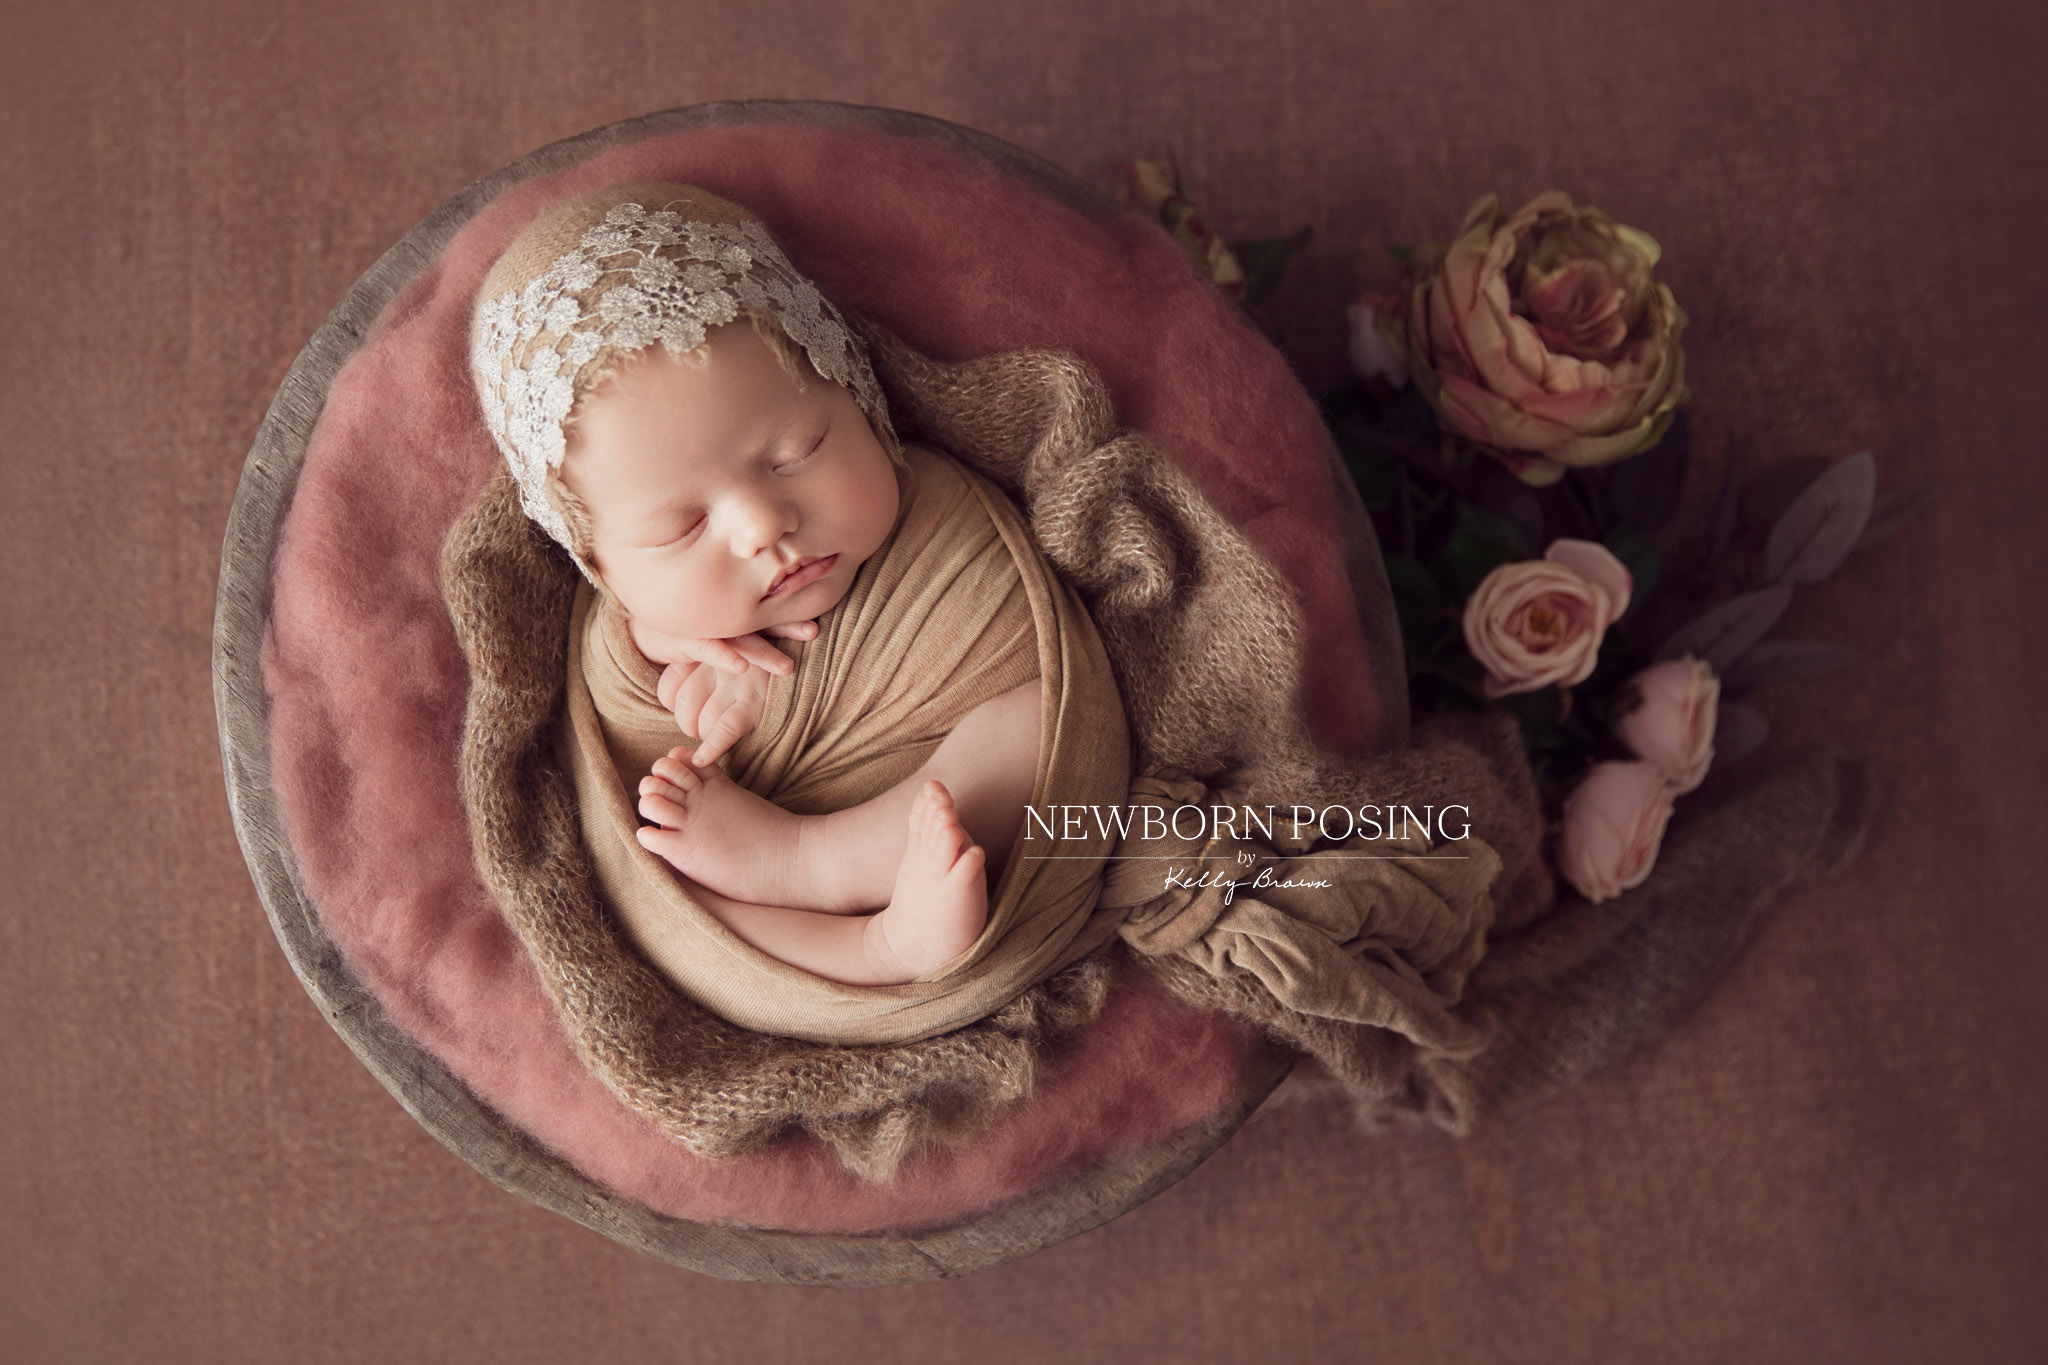 Newborn photography of a baby in a prop wrapped